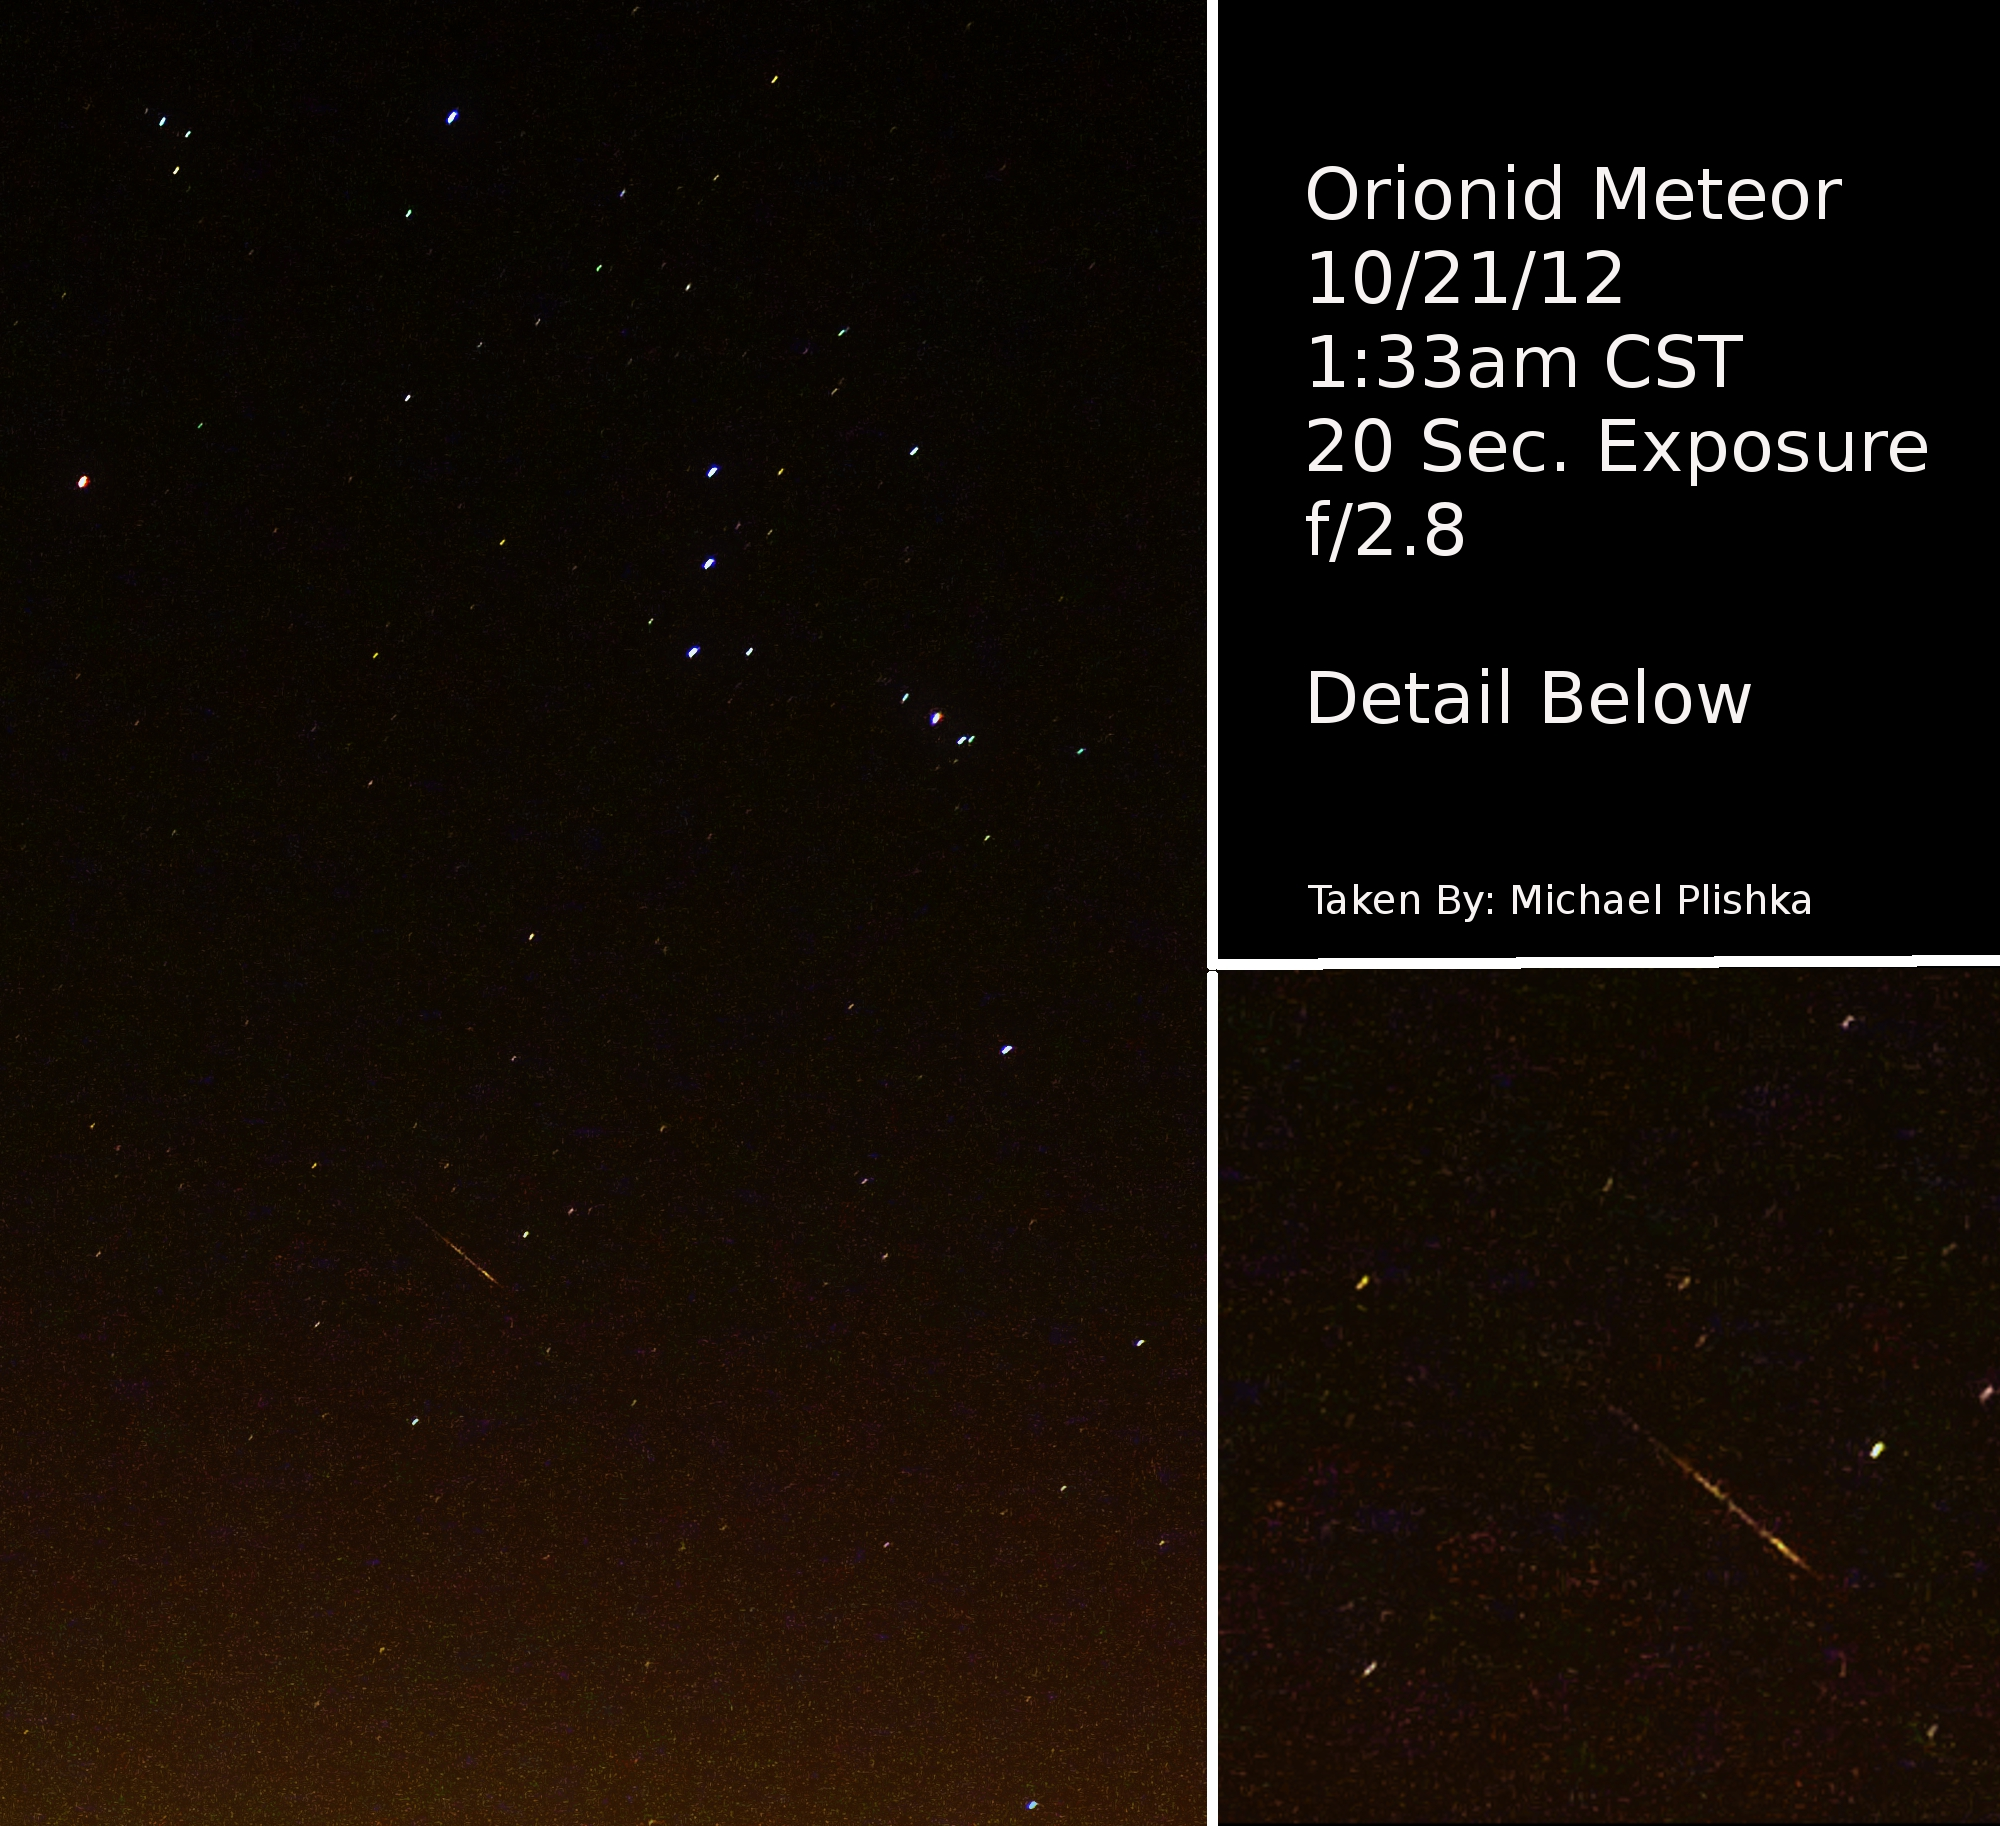 Orionid Meteor Shower 2012: Michael Plishka